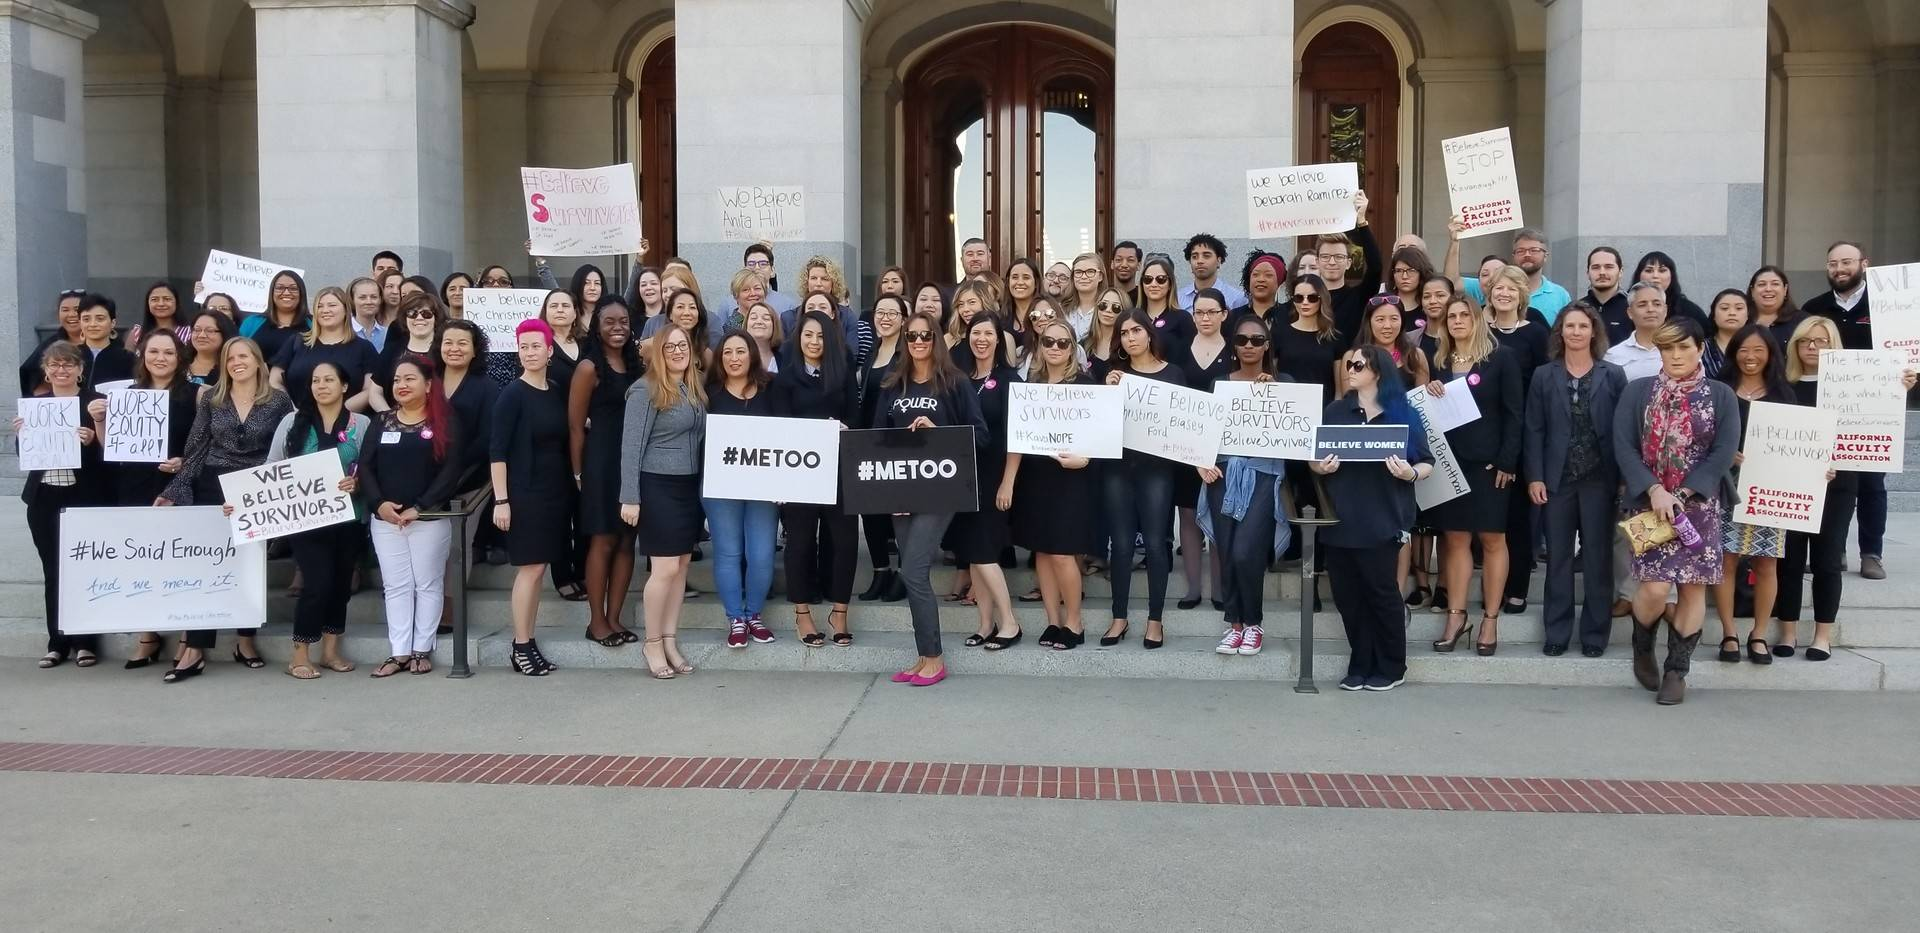 Dozens of women at the state Capitol showed their support in Sacramento on Monday for those accusing U.S. Supreme Court nominee Brett Kavanaugh of sexual assault. Katie Orr/KQED